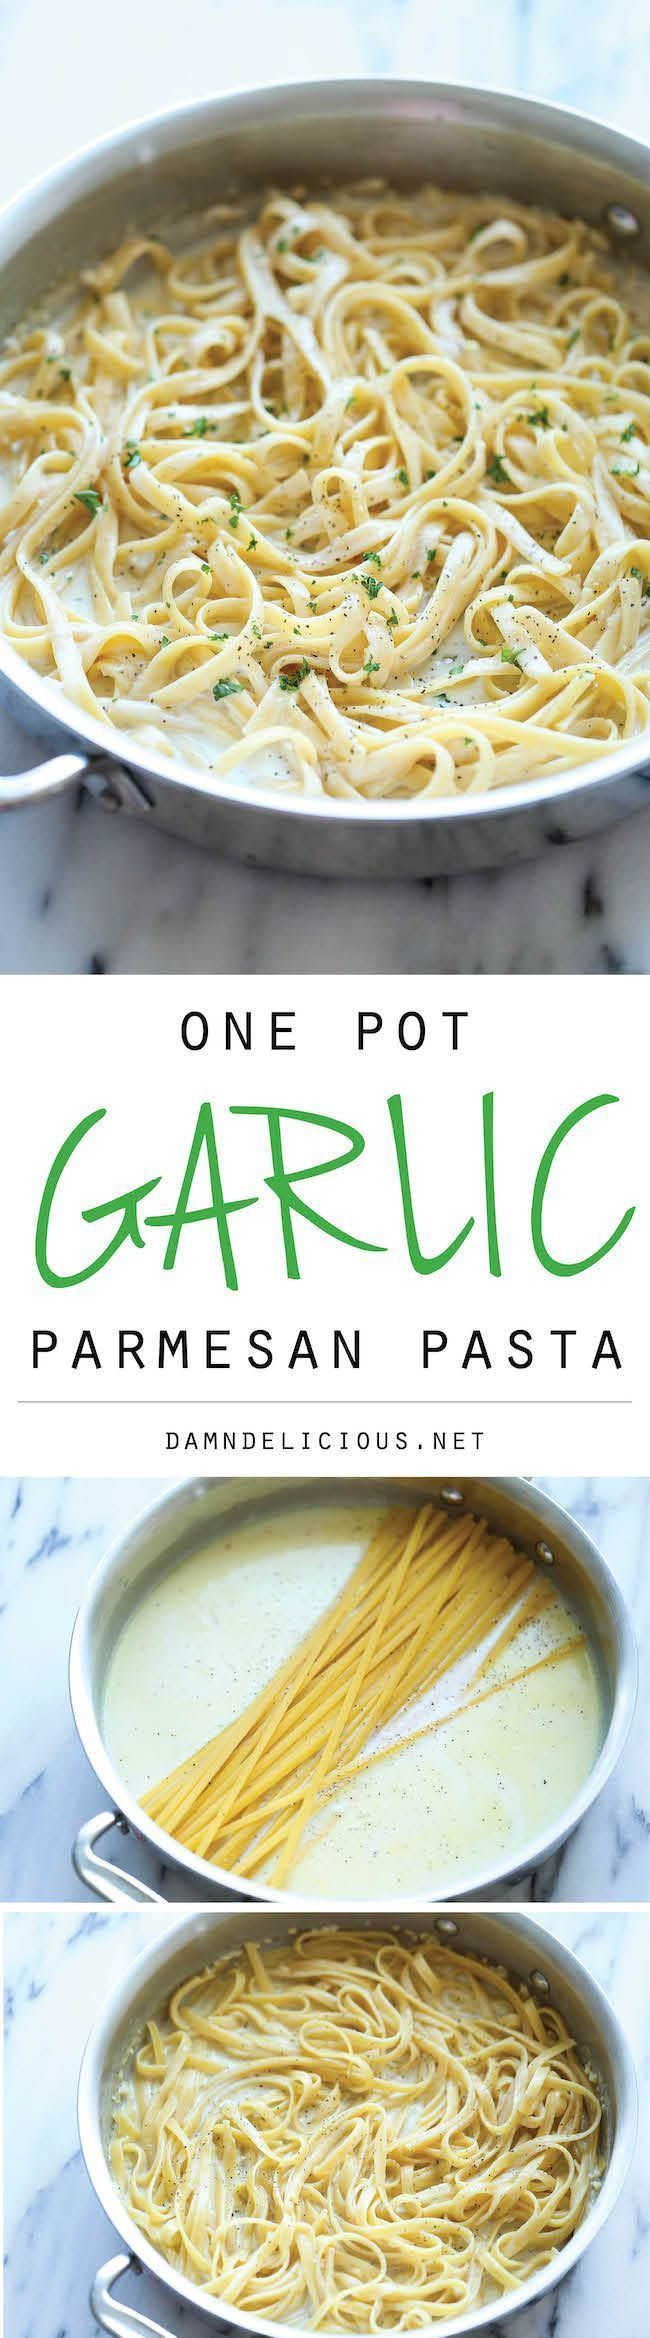 One Pot Garlic Parmesan Pasta - The easiest and creamiest pasta made in a single pot - even the pasta gets cooked right in the pan! How easy is that? (scheduled via http://www.tailwindapp.com?utm_source=pinterest&utm_medium=twpin&utm_content=post896871&utm_campaign=scheduler_attribution)